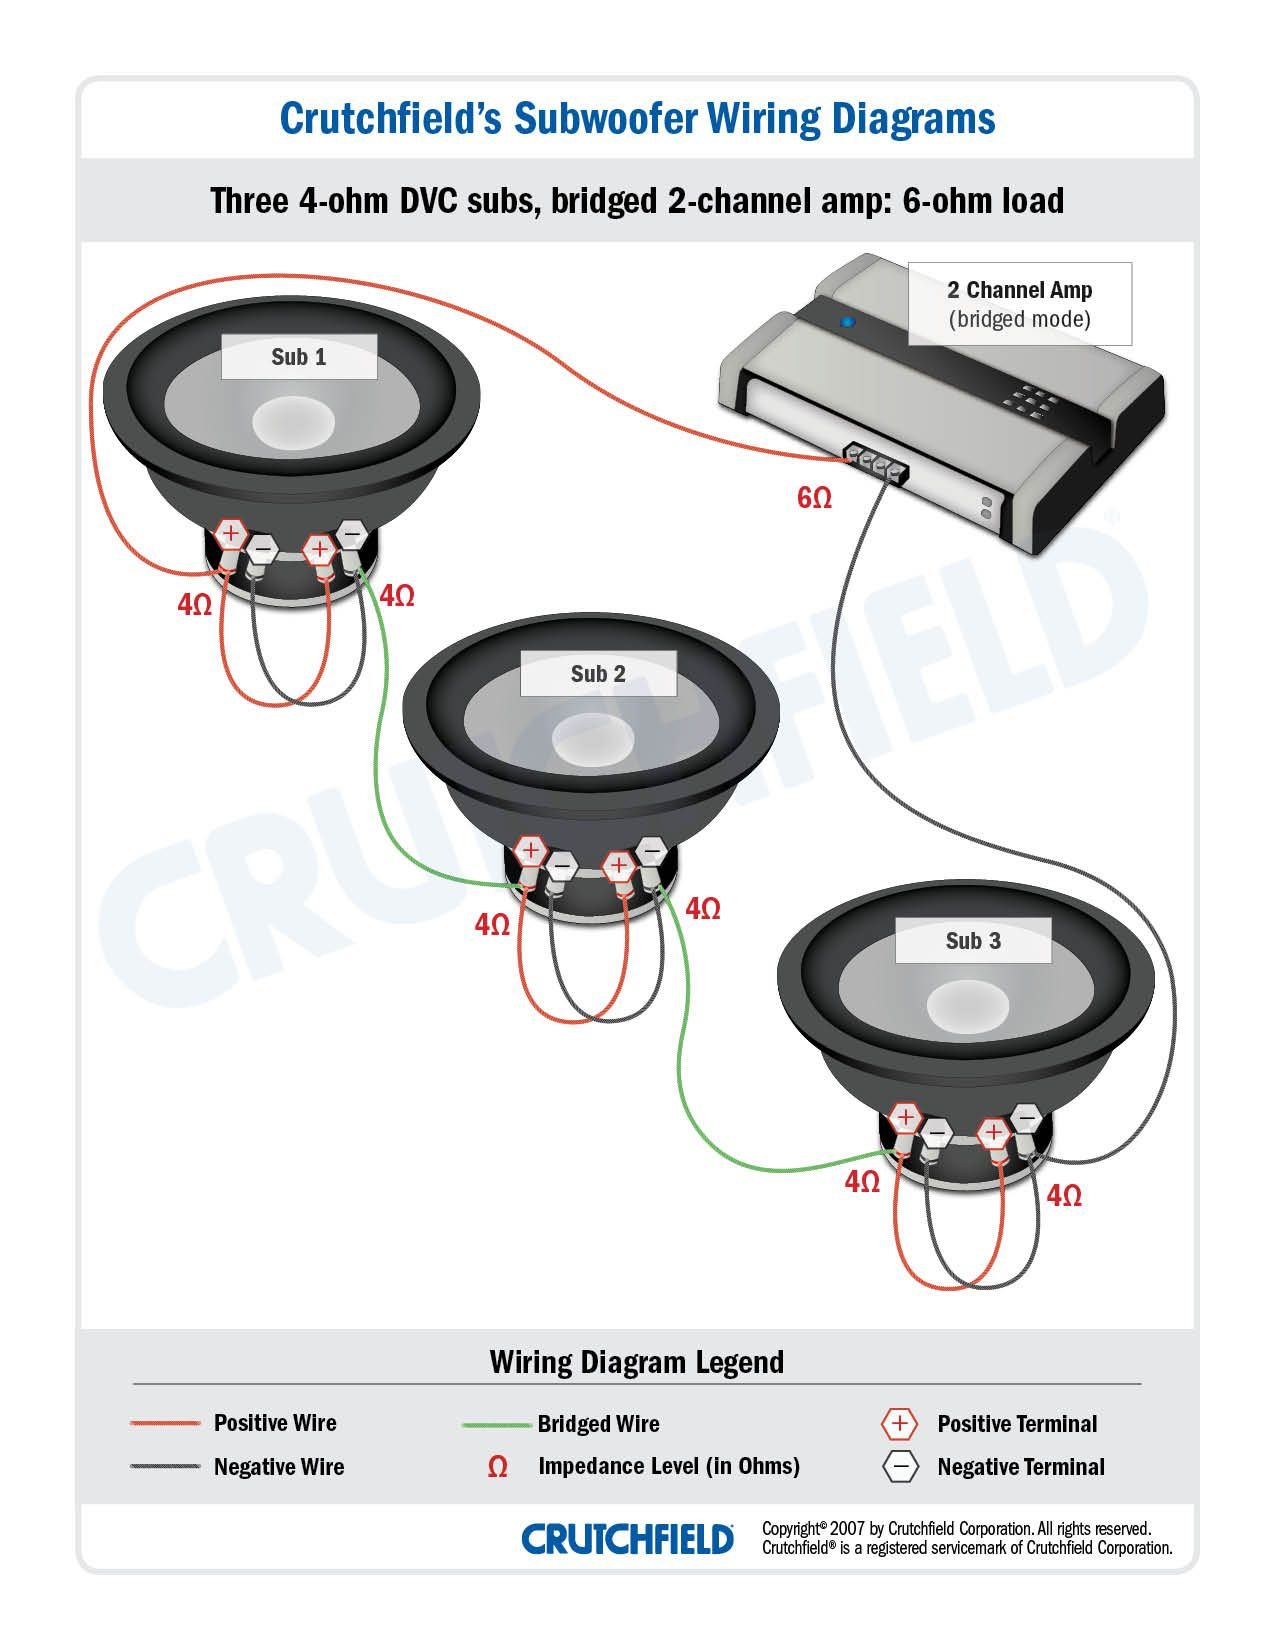 Top 10 Subwoofer Wiring Diagram Free Download 3 DVC 4 Ohm 2 Ch And Dual 1